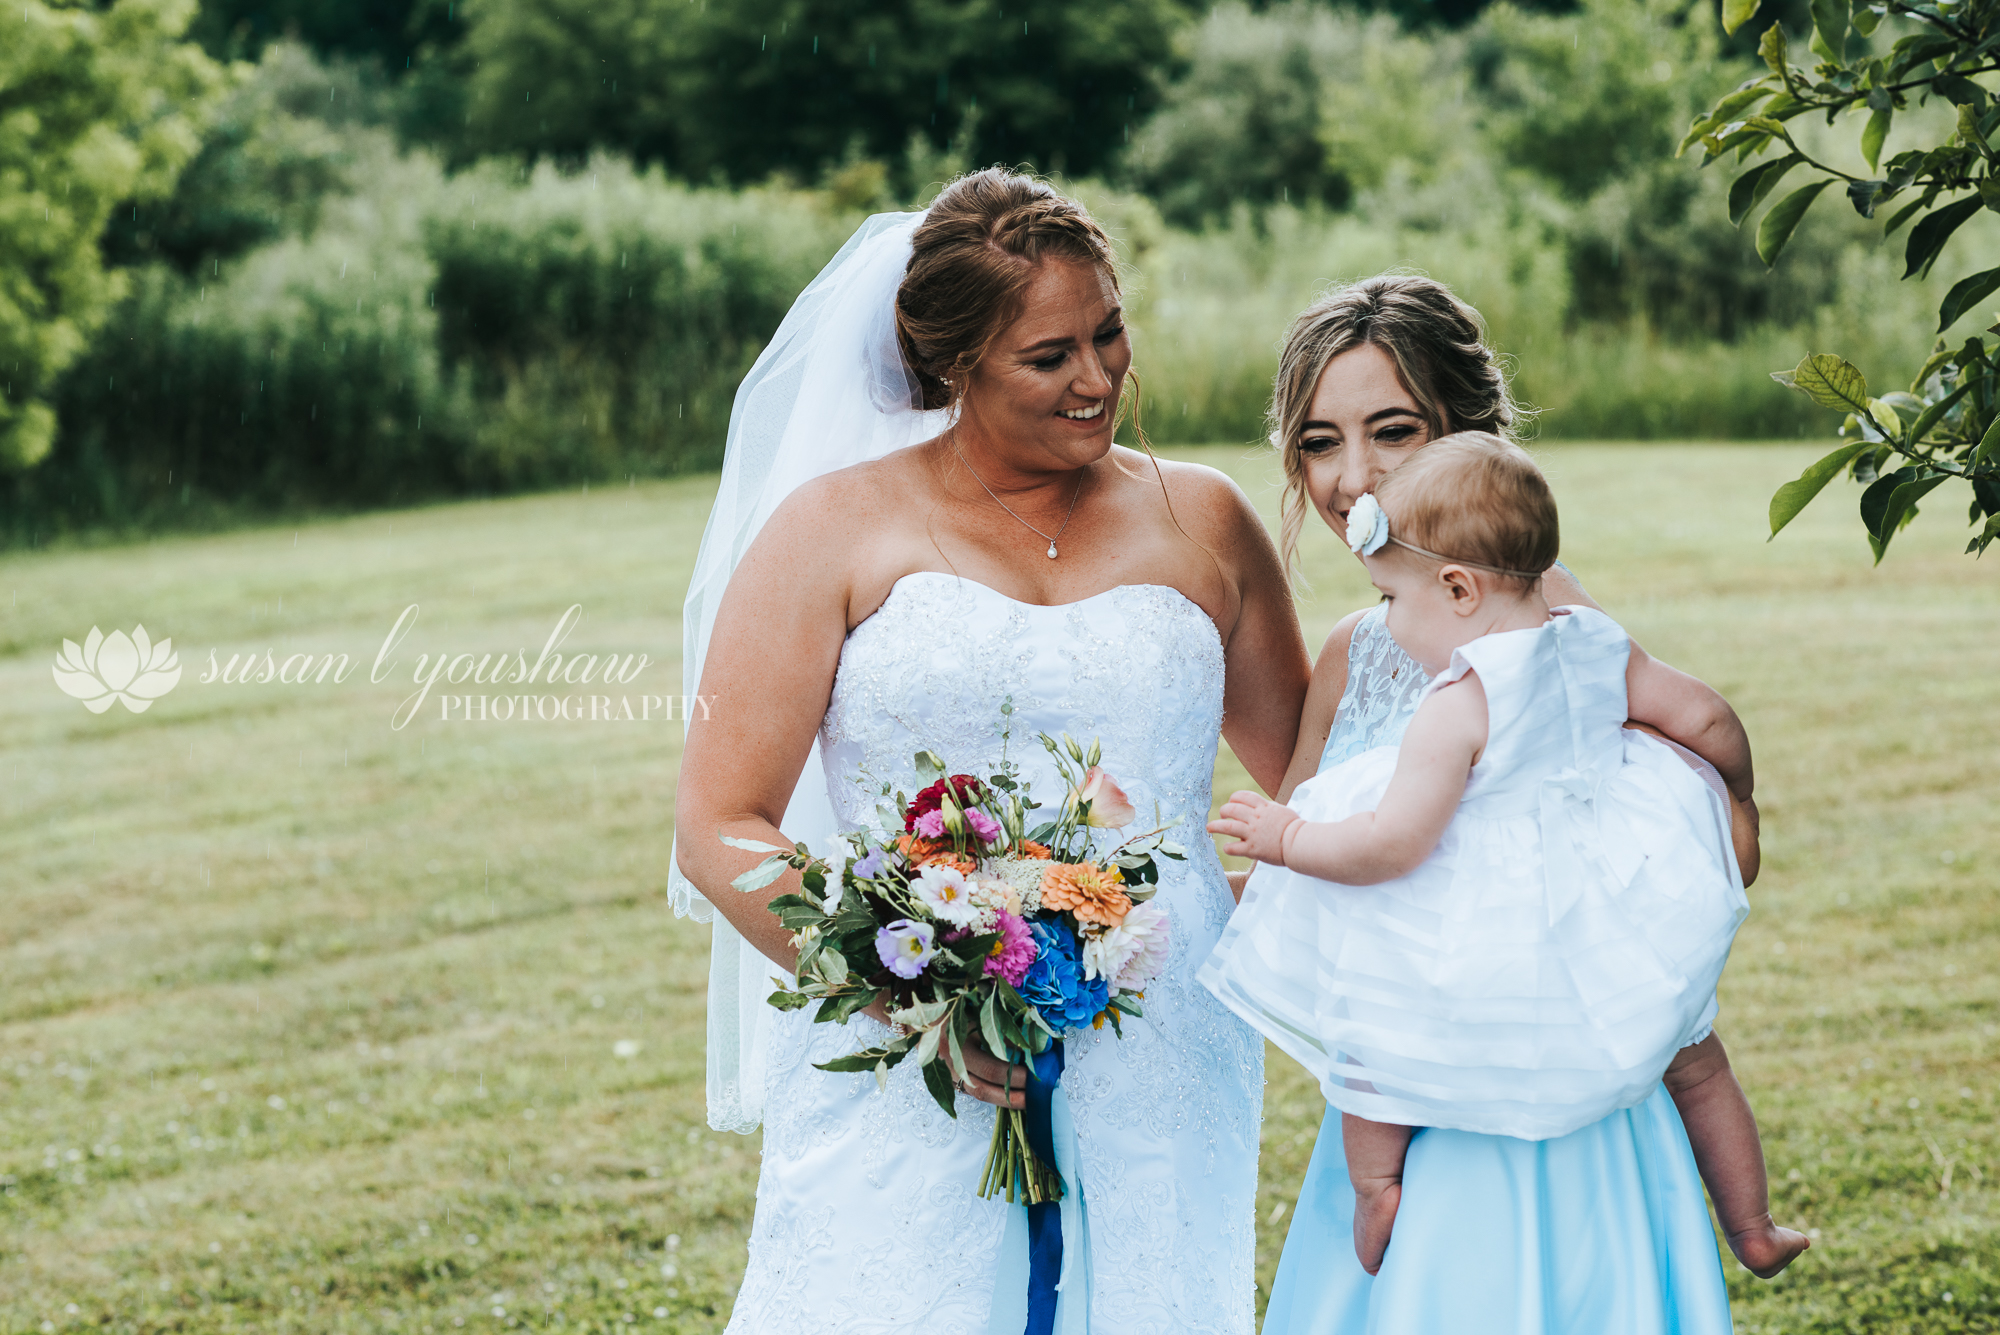 Erin and Jason Wedding Photos 07-06-2019 SLY Photography-59.jpg